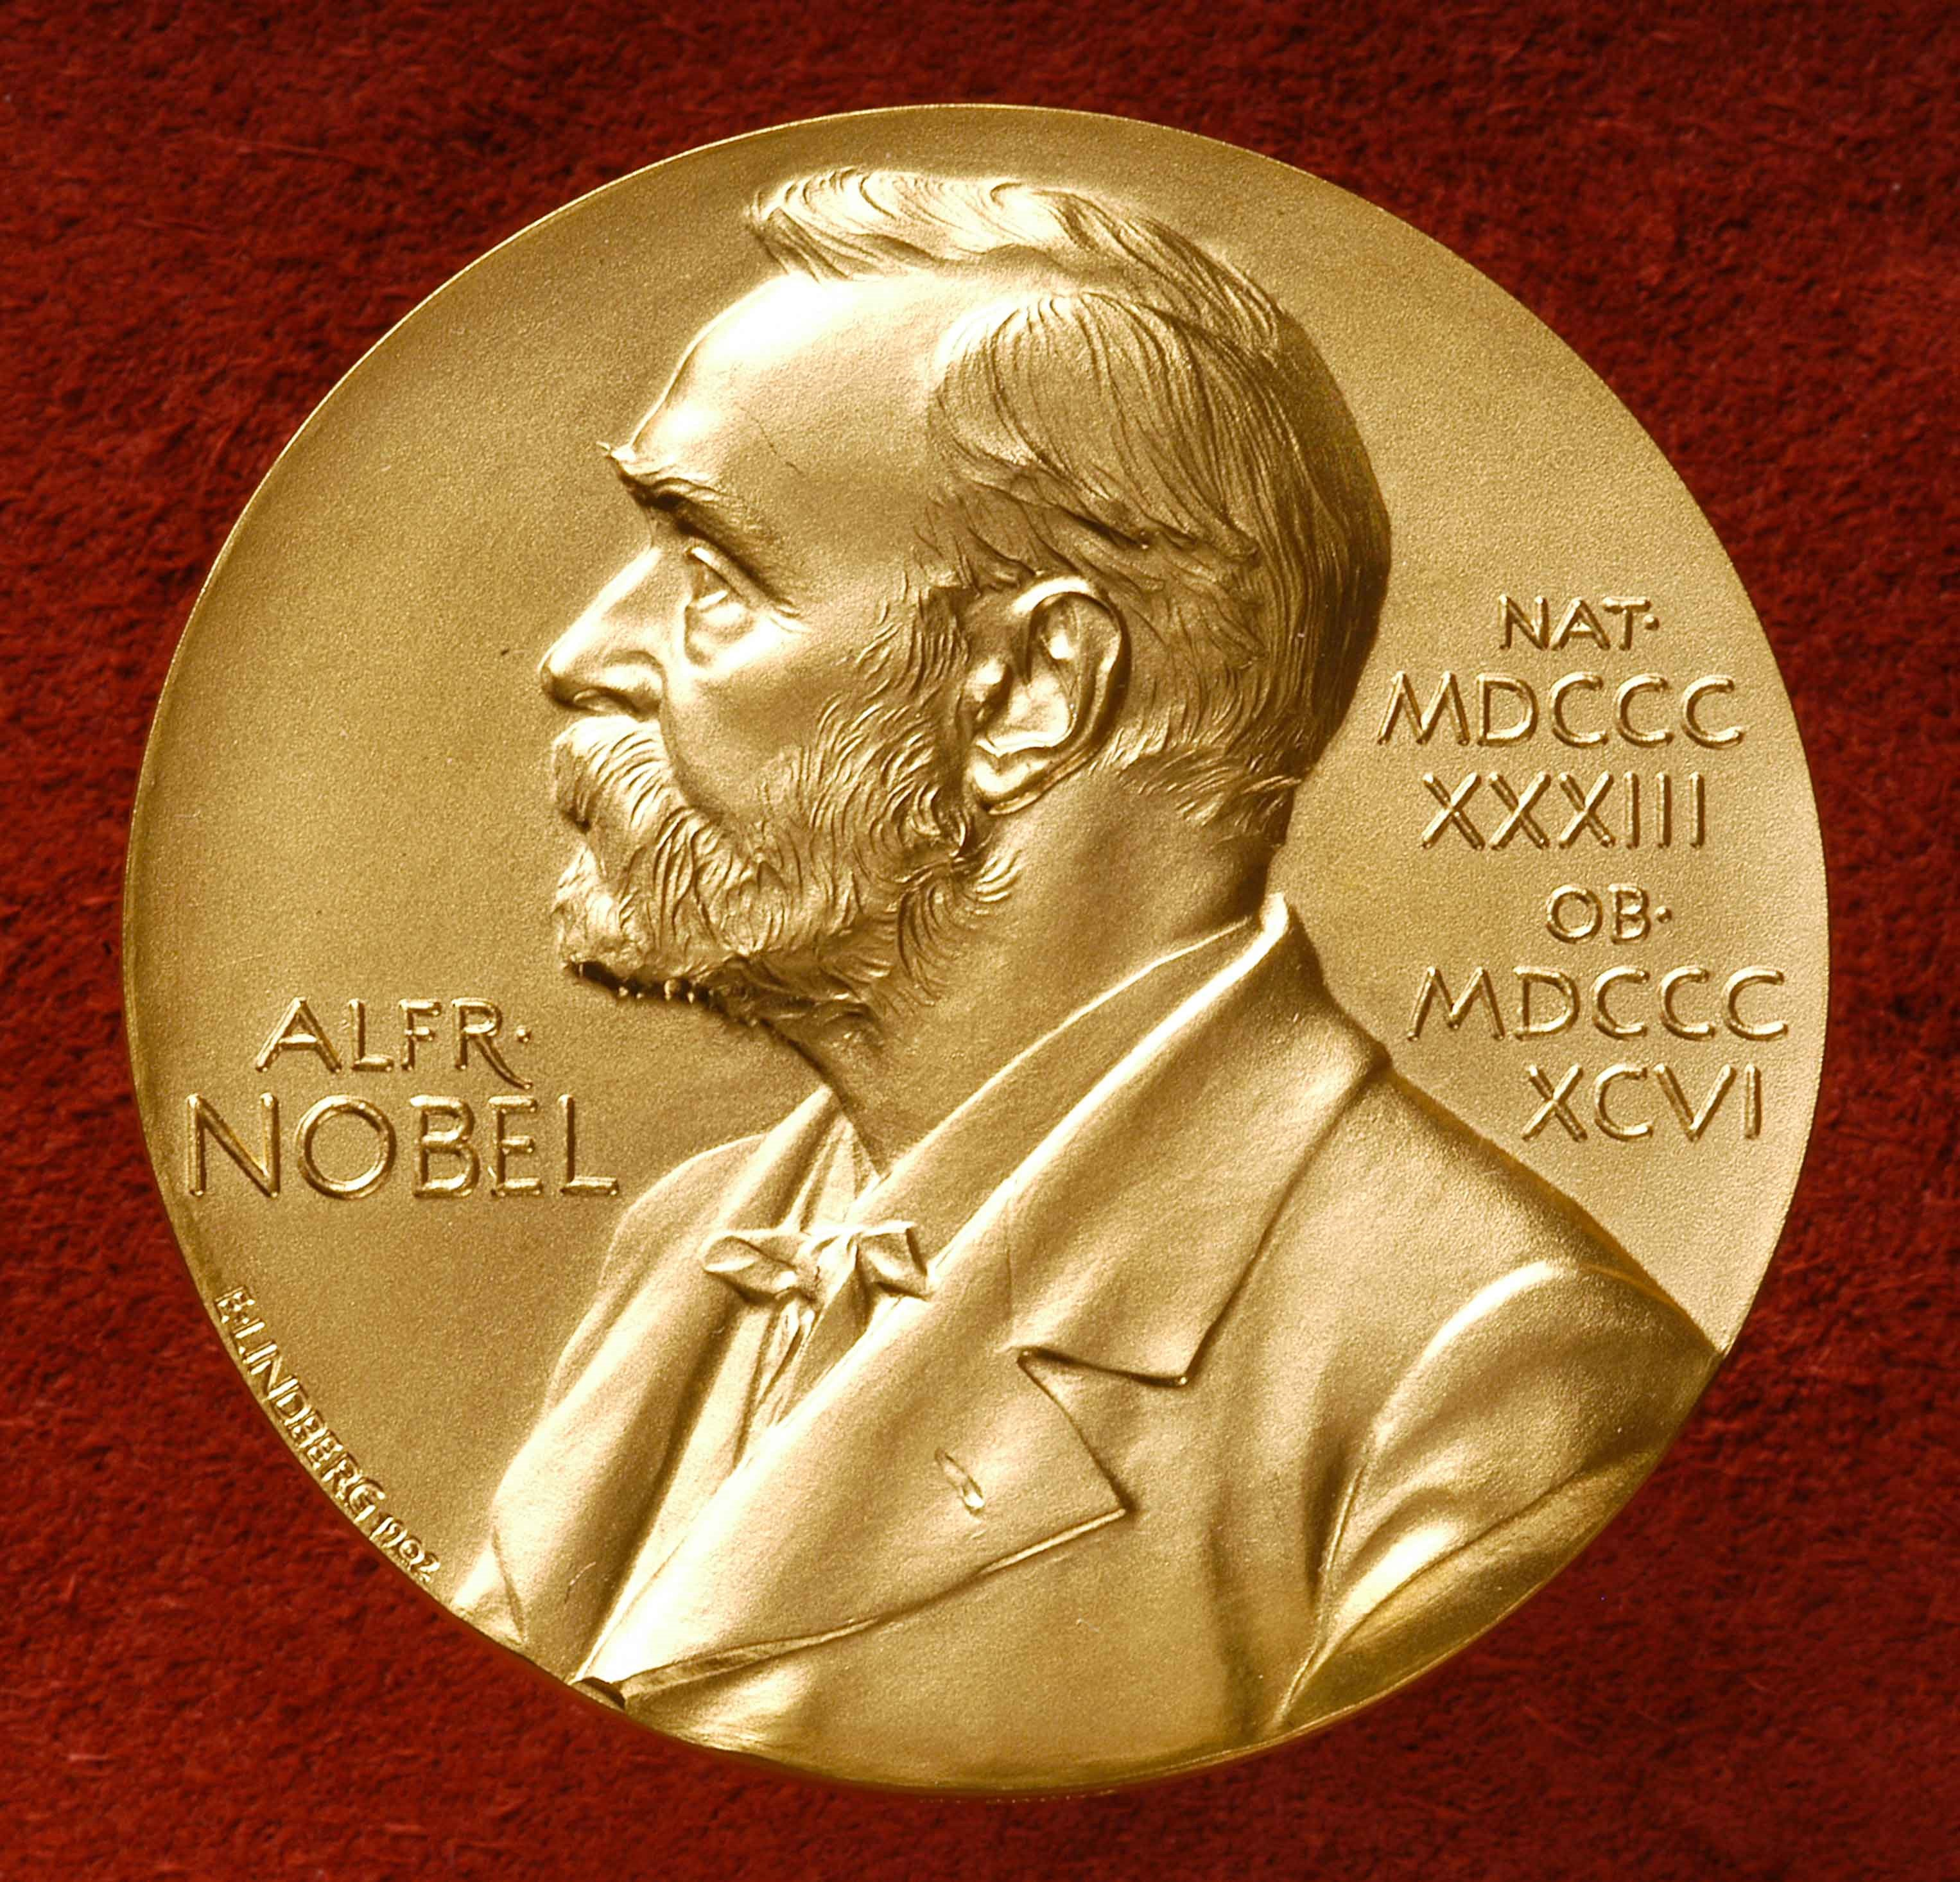 Alfred Nobel could foresee how important teamwork was and how useful conference calls could be